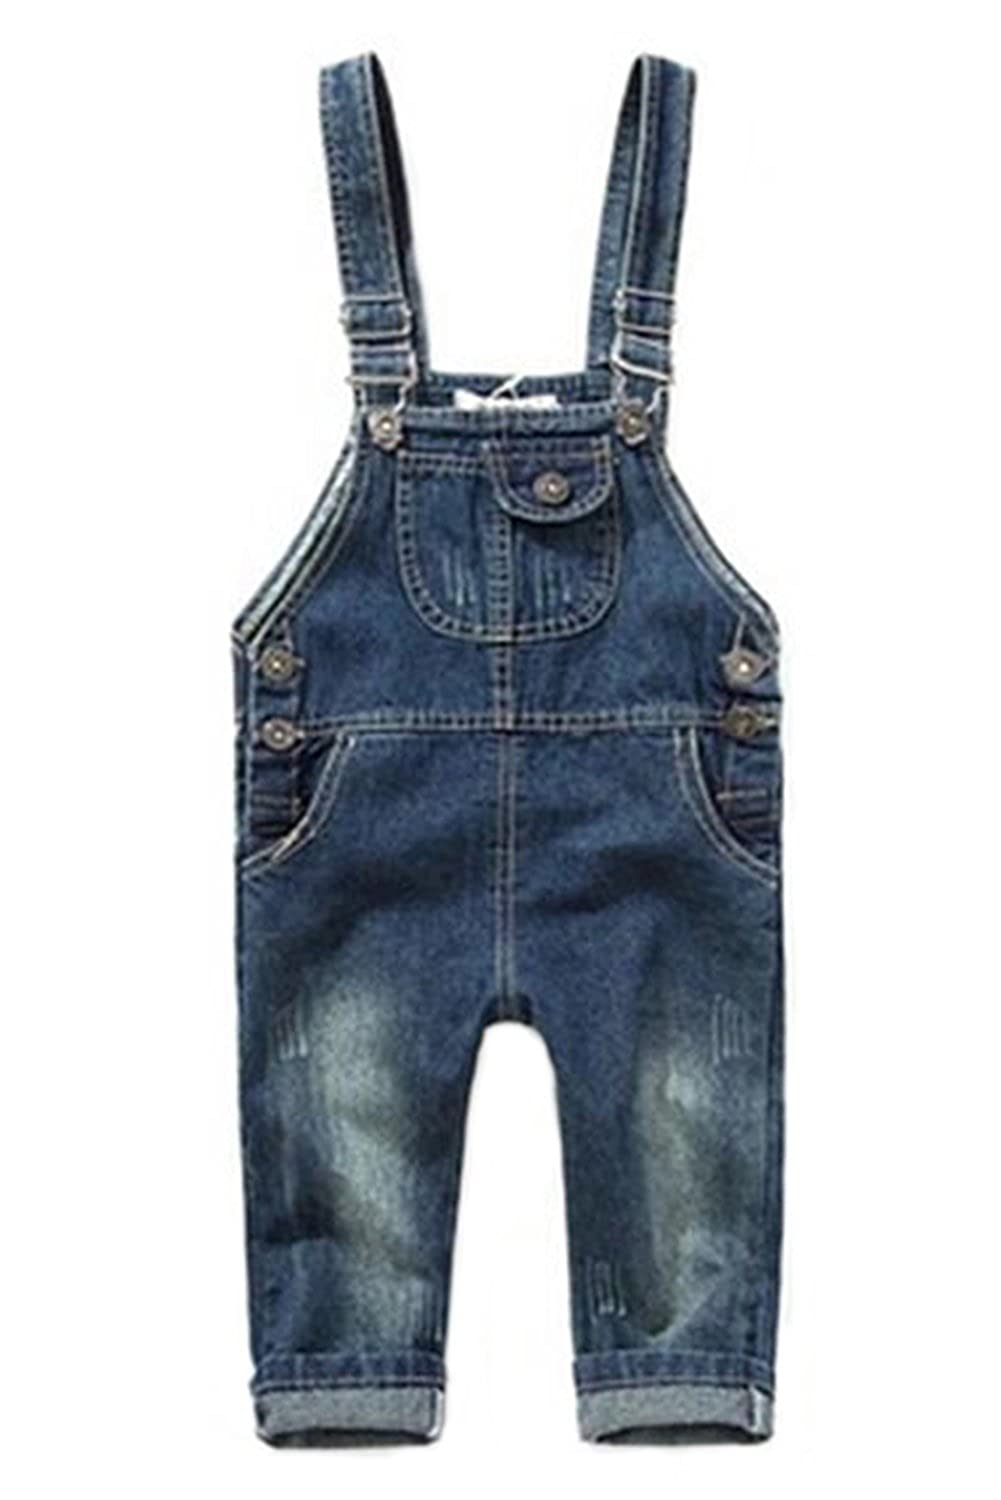 ZHUANNIAN Baby Dungarees Toddler Boys Girls Denim Romper Jumpsuits Trousers Bib Overall